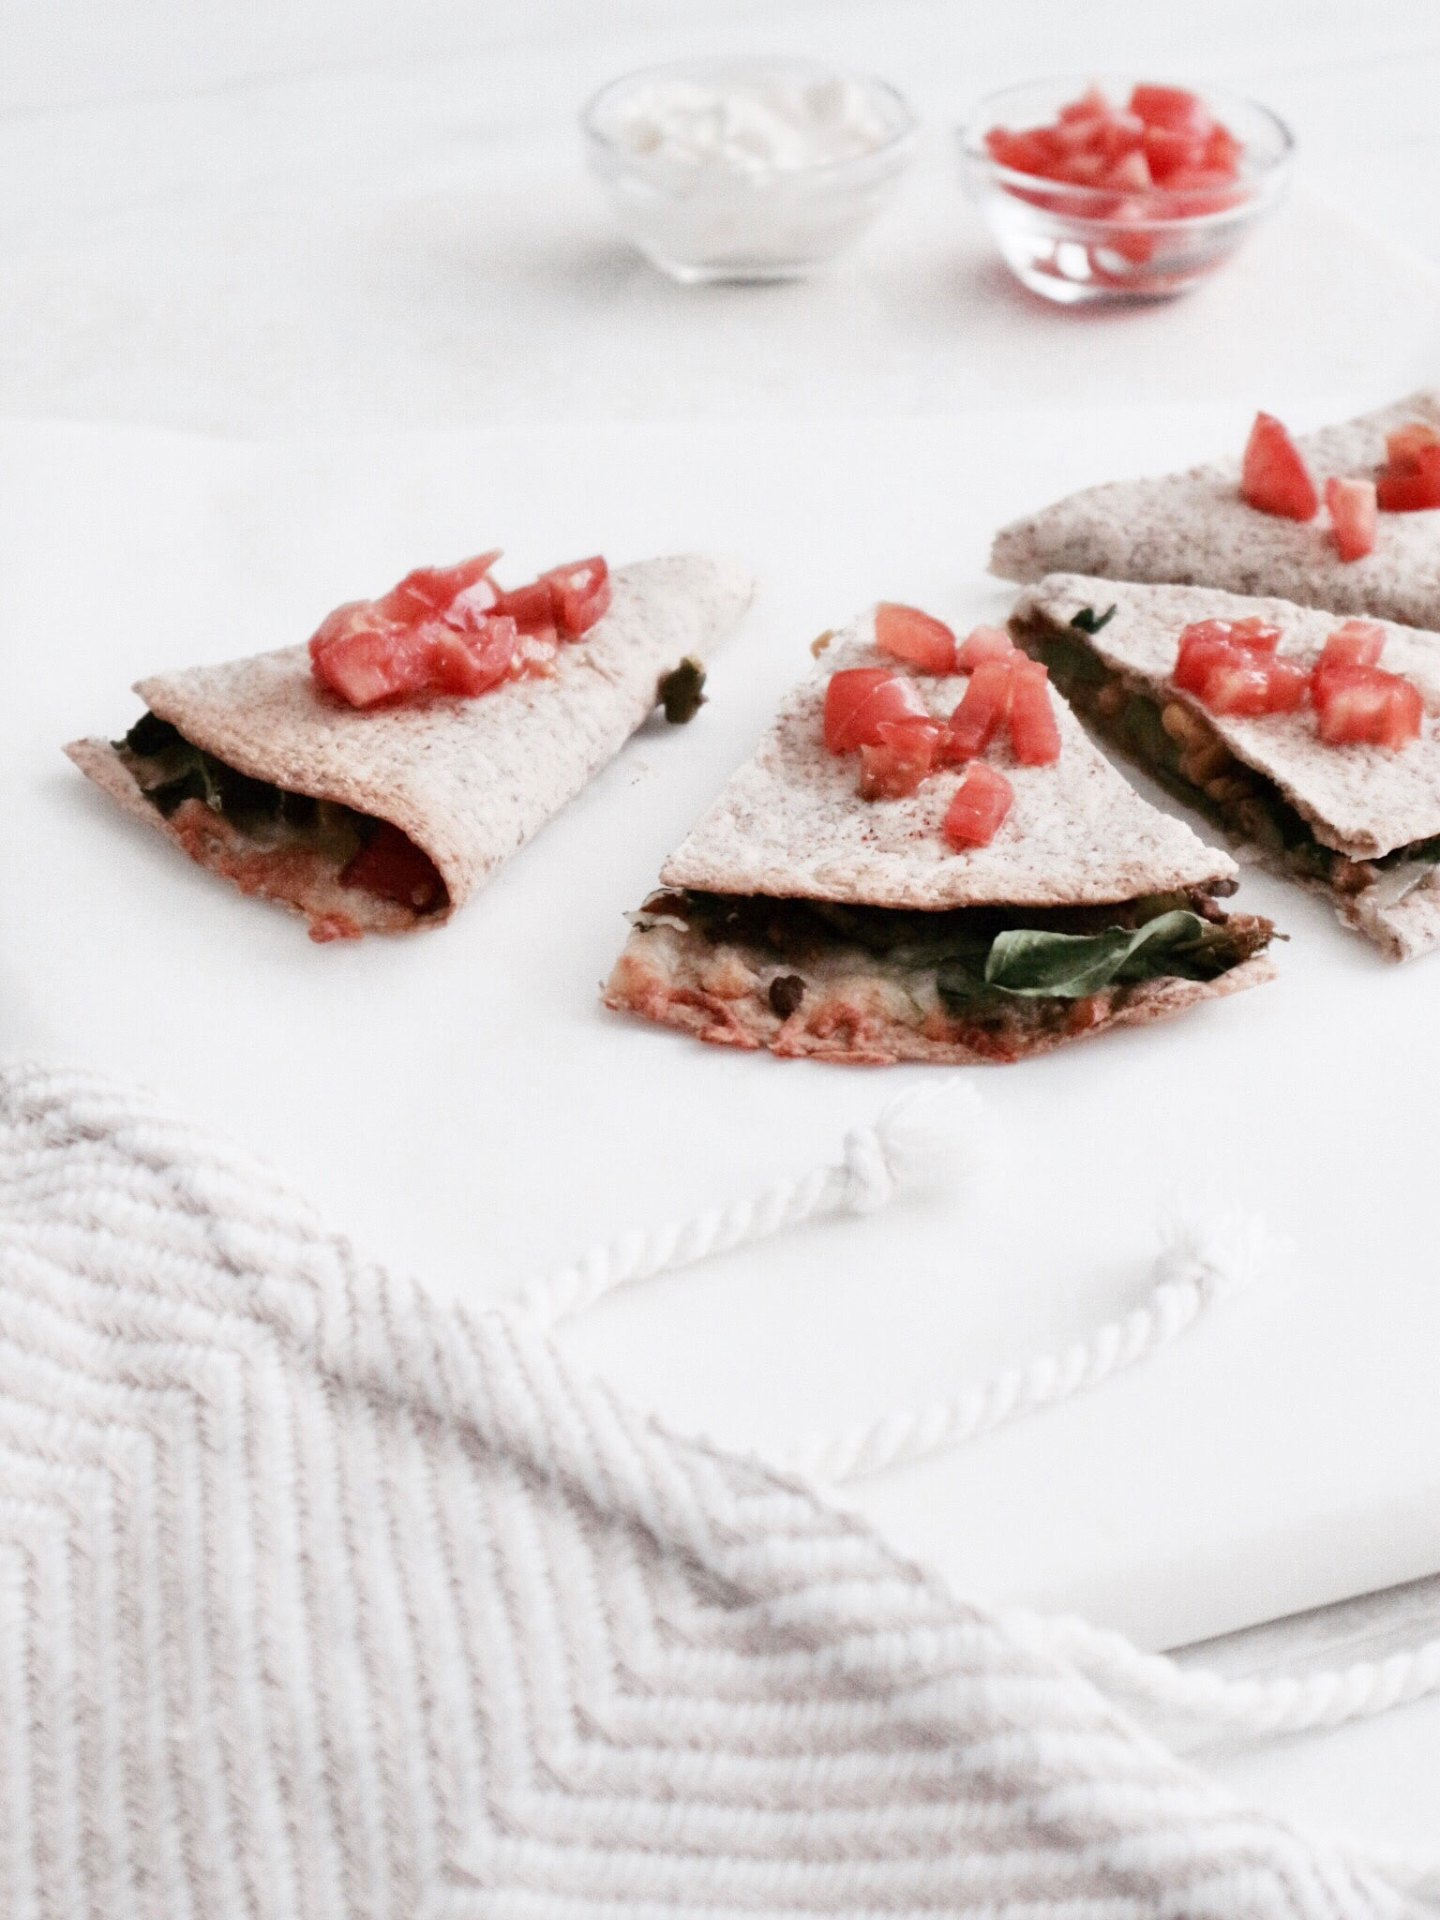 My Fave Easy & Healthy Dinner To Make | Vegetarian Quesadillas